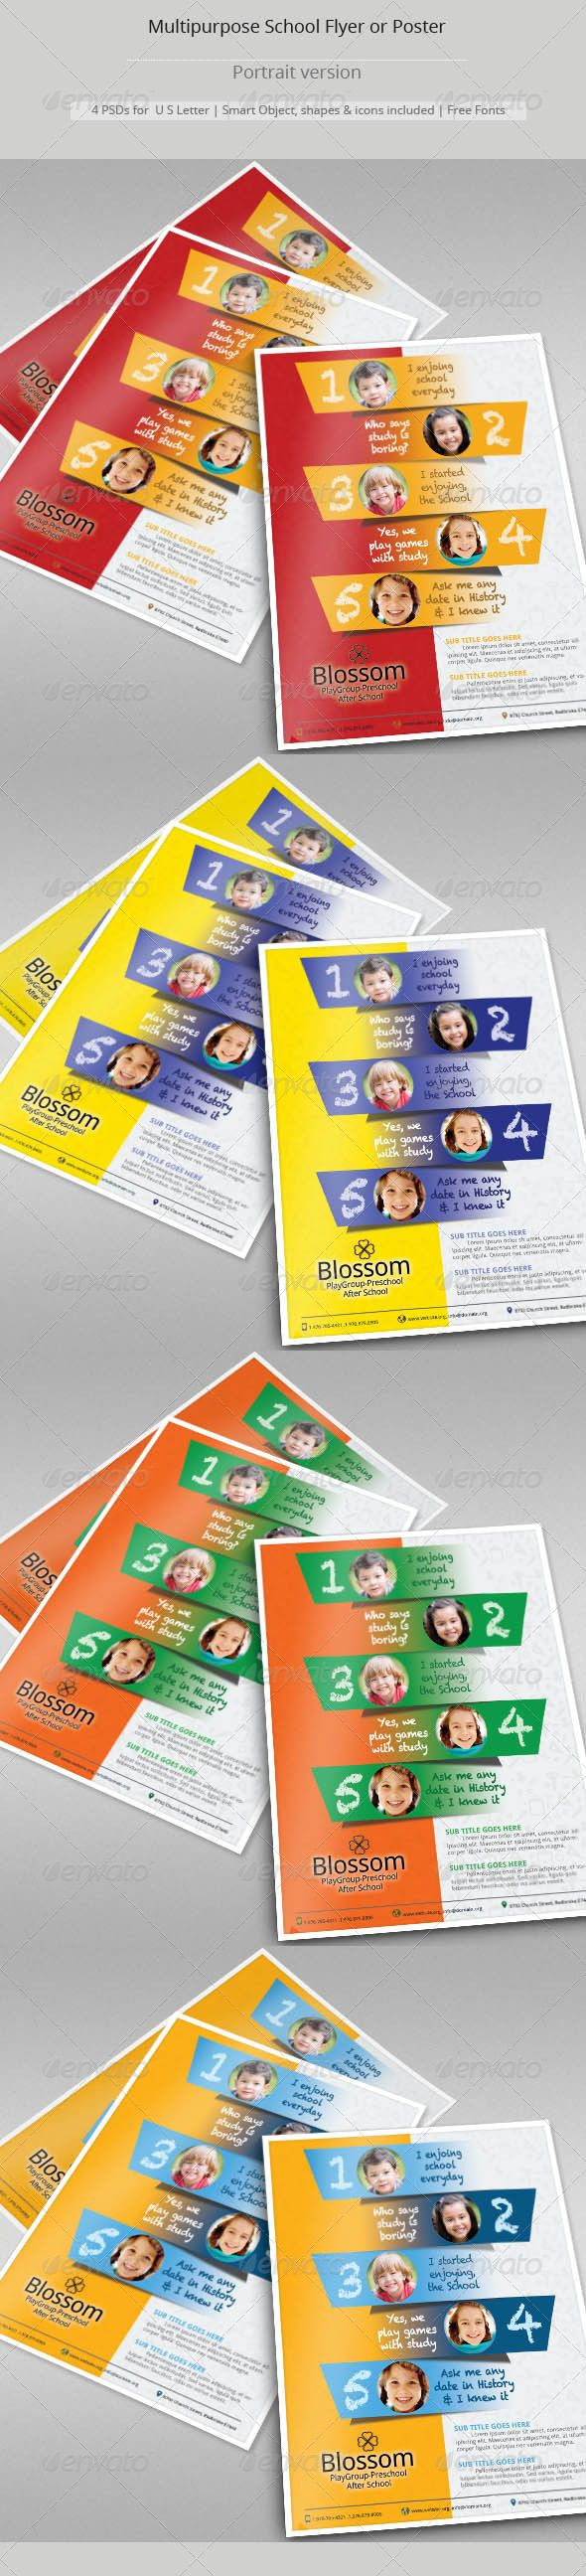 Multipurpose School Flyer Templates Flyer Template Template And - Buy flyer templates